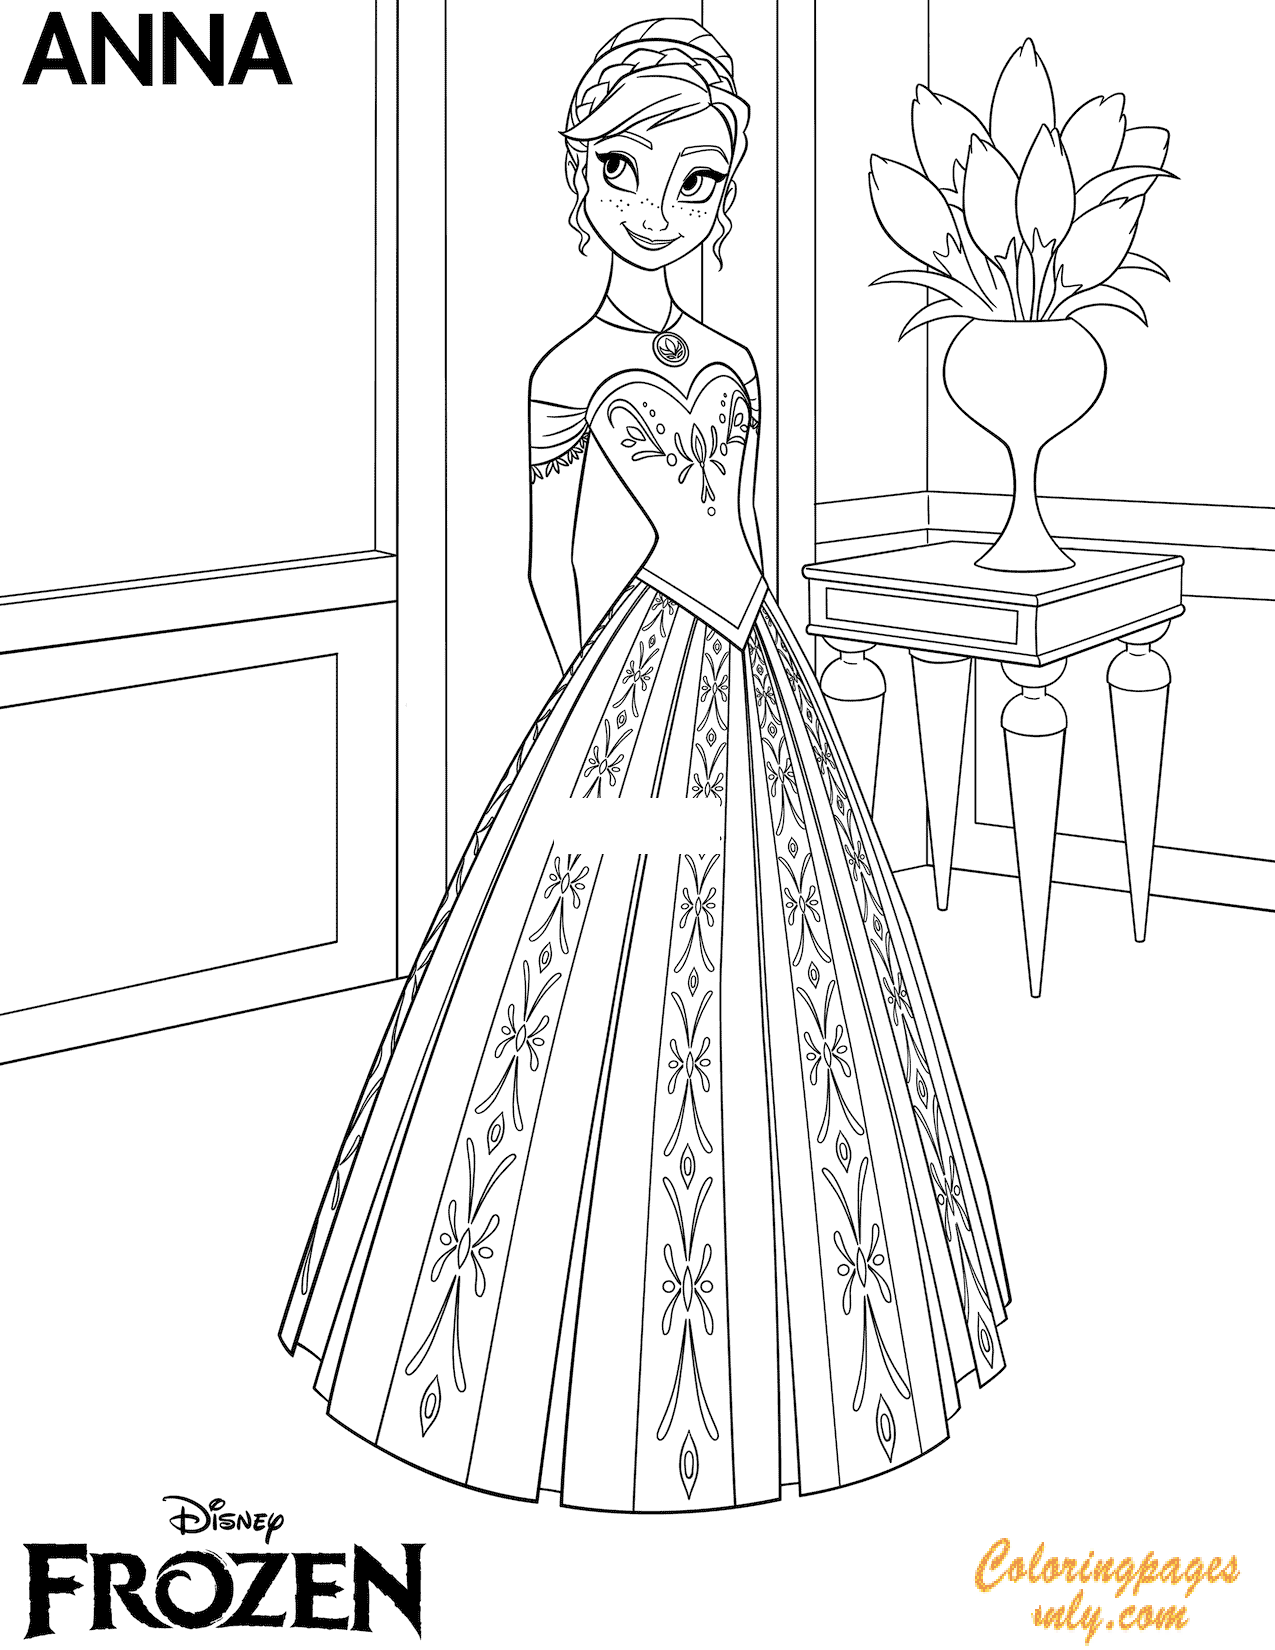 Princess Frozen Anna Flower Coloring Page - Free Coloring ...